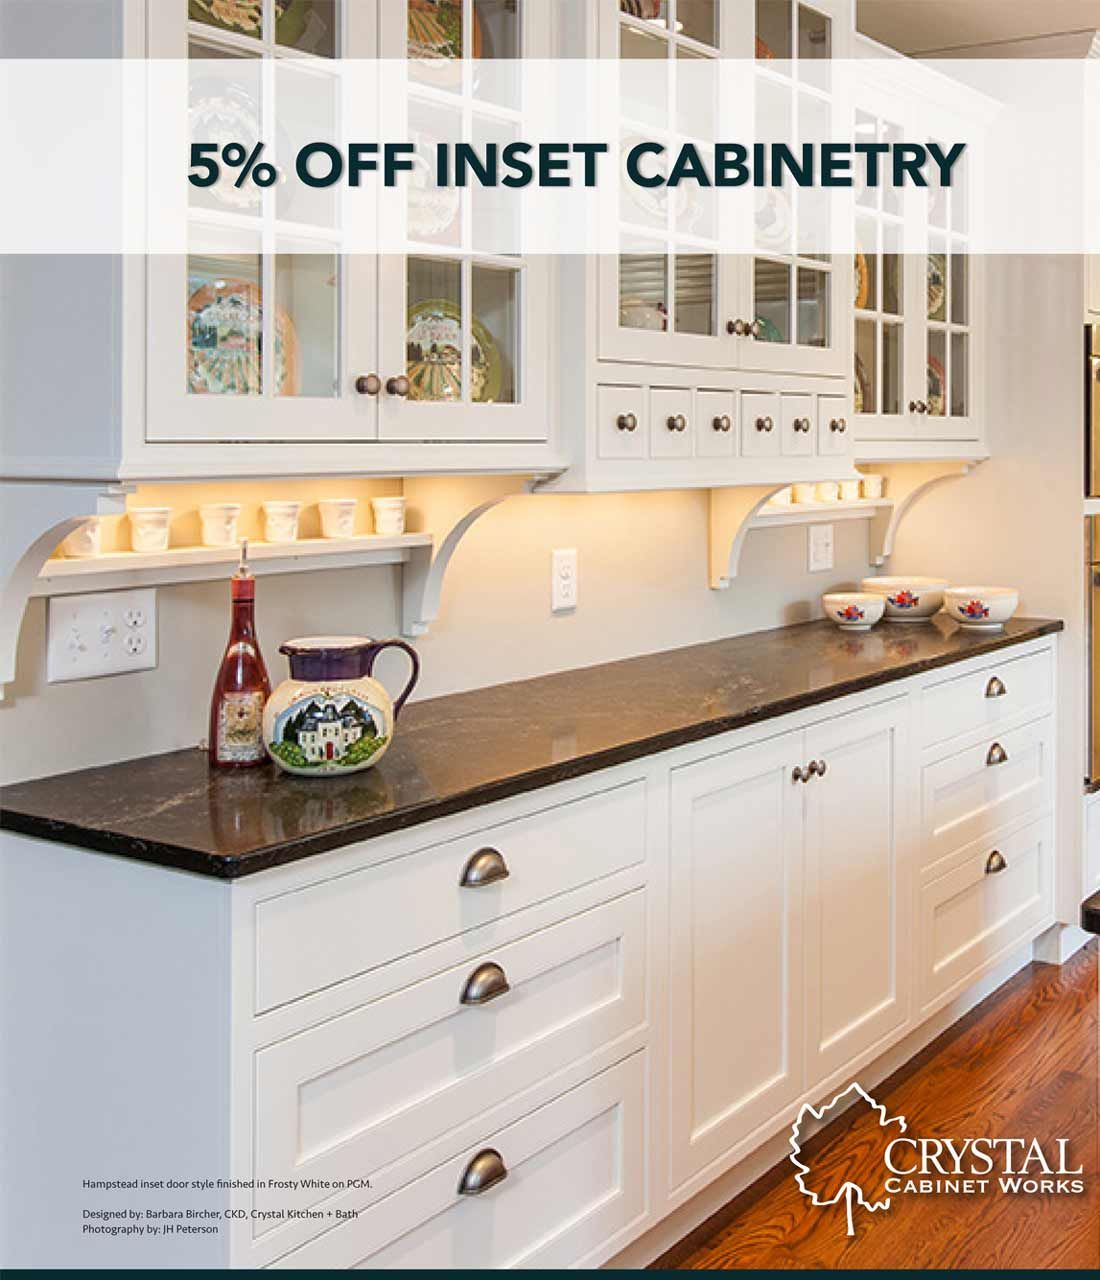 Crystal Cabinetry Promotion On Inset Cabinets Upgrades Denver Castle Rock Co Https W Discount Kitchen Cabinets Free Kitchen Cabinets Kitchen Cabinets Upgrade